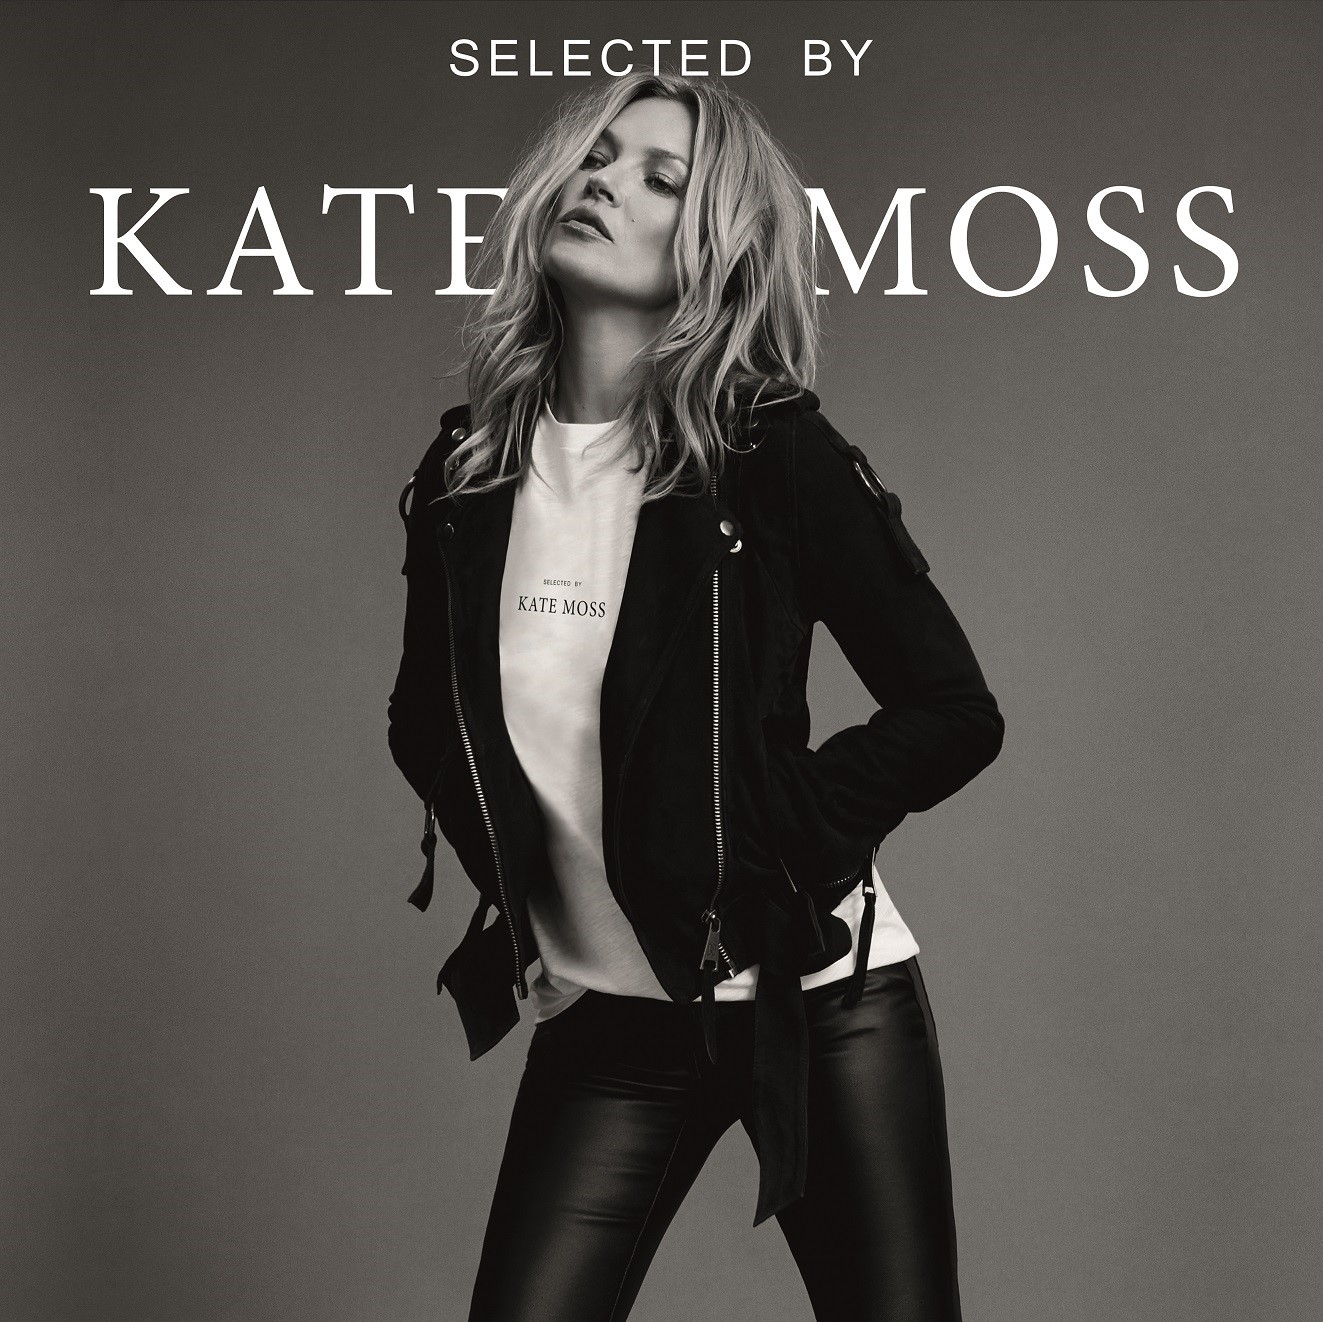 Pure London 2019 : 'Selected By Kate Moss' To Be Launched In